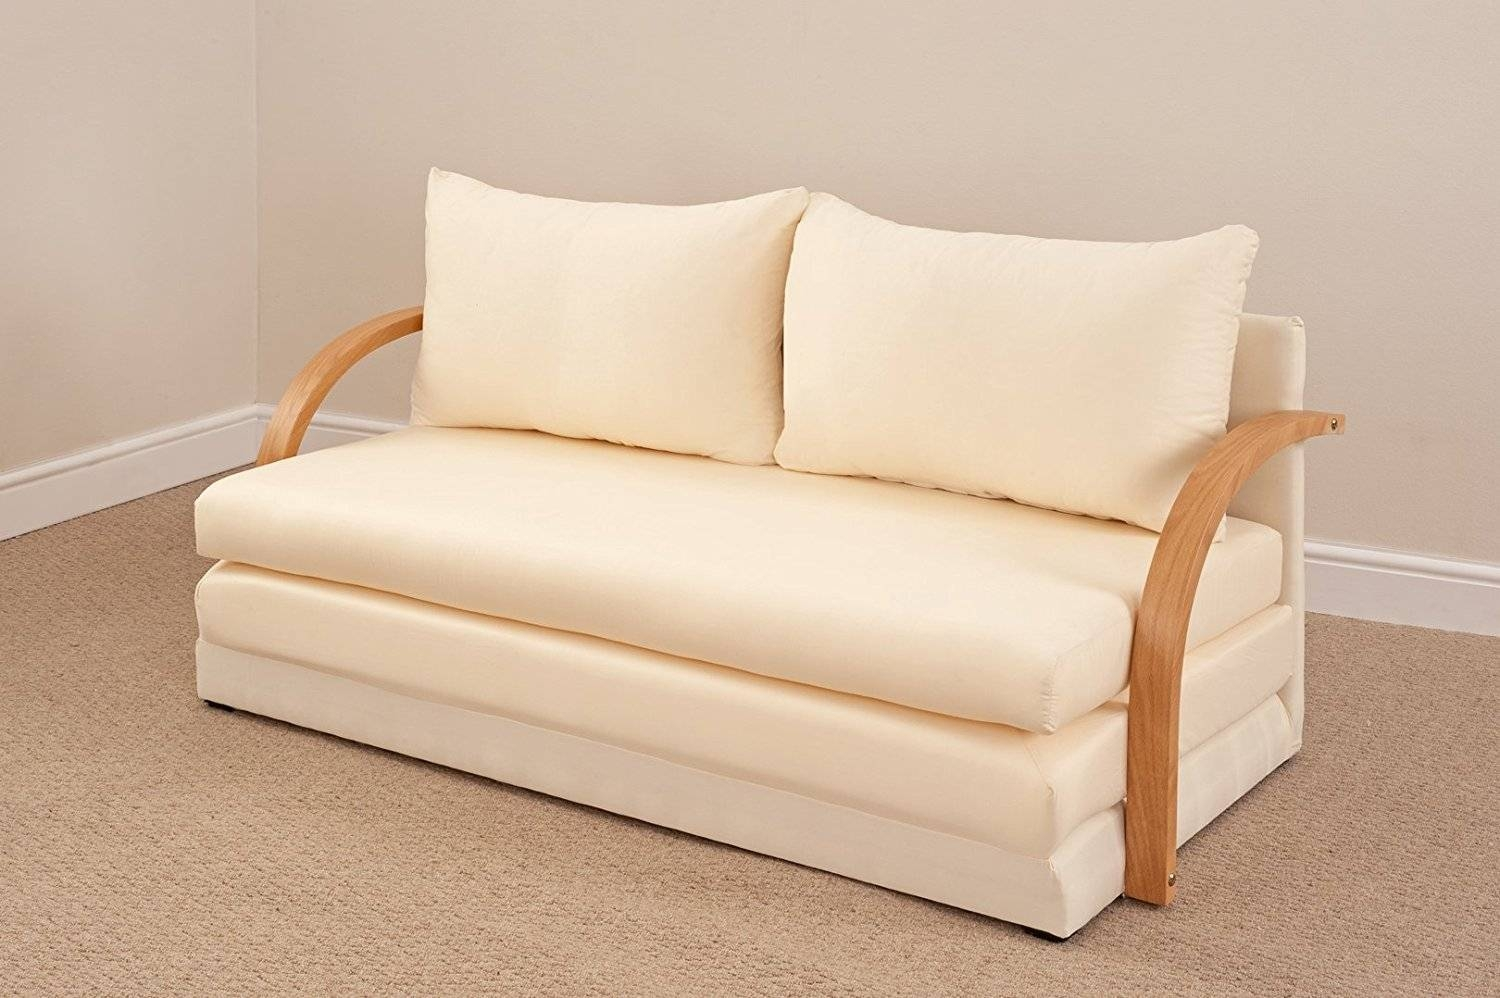 Cute Natural Beige Fold Out Double Foam Sofa Bed Most Comfortable with Most Comfortable Sofabed (Image 11 of 30)